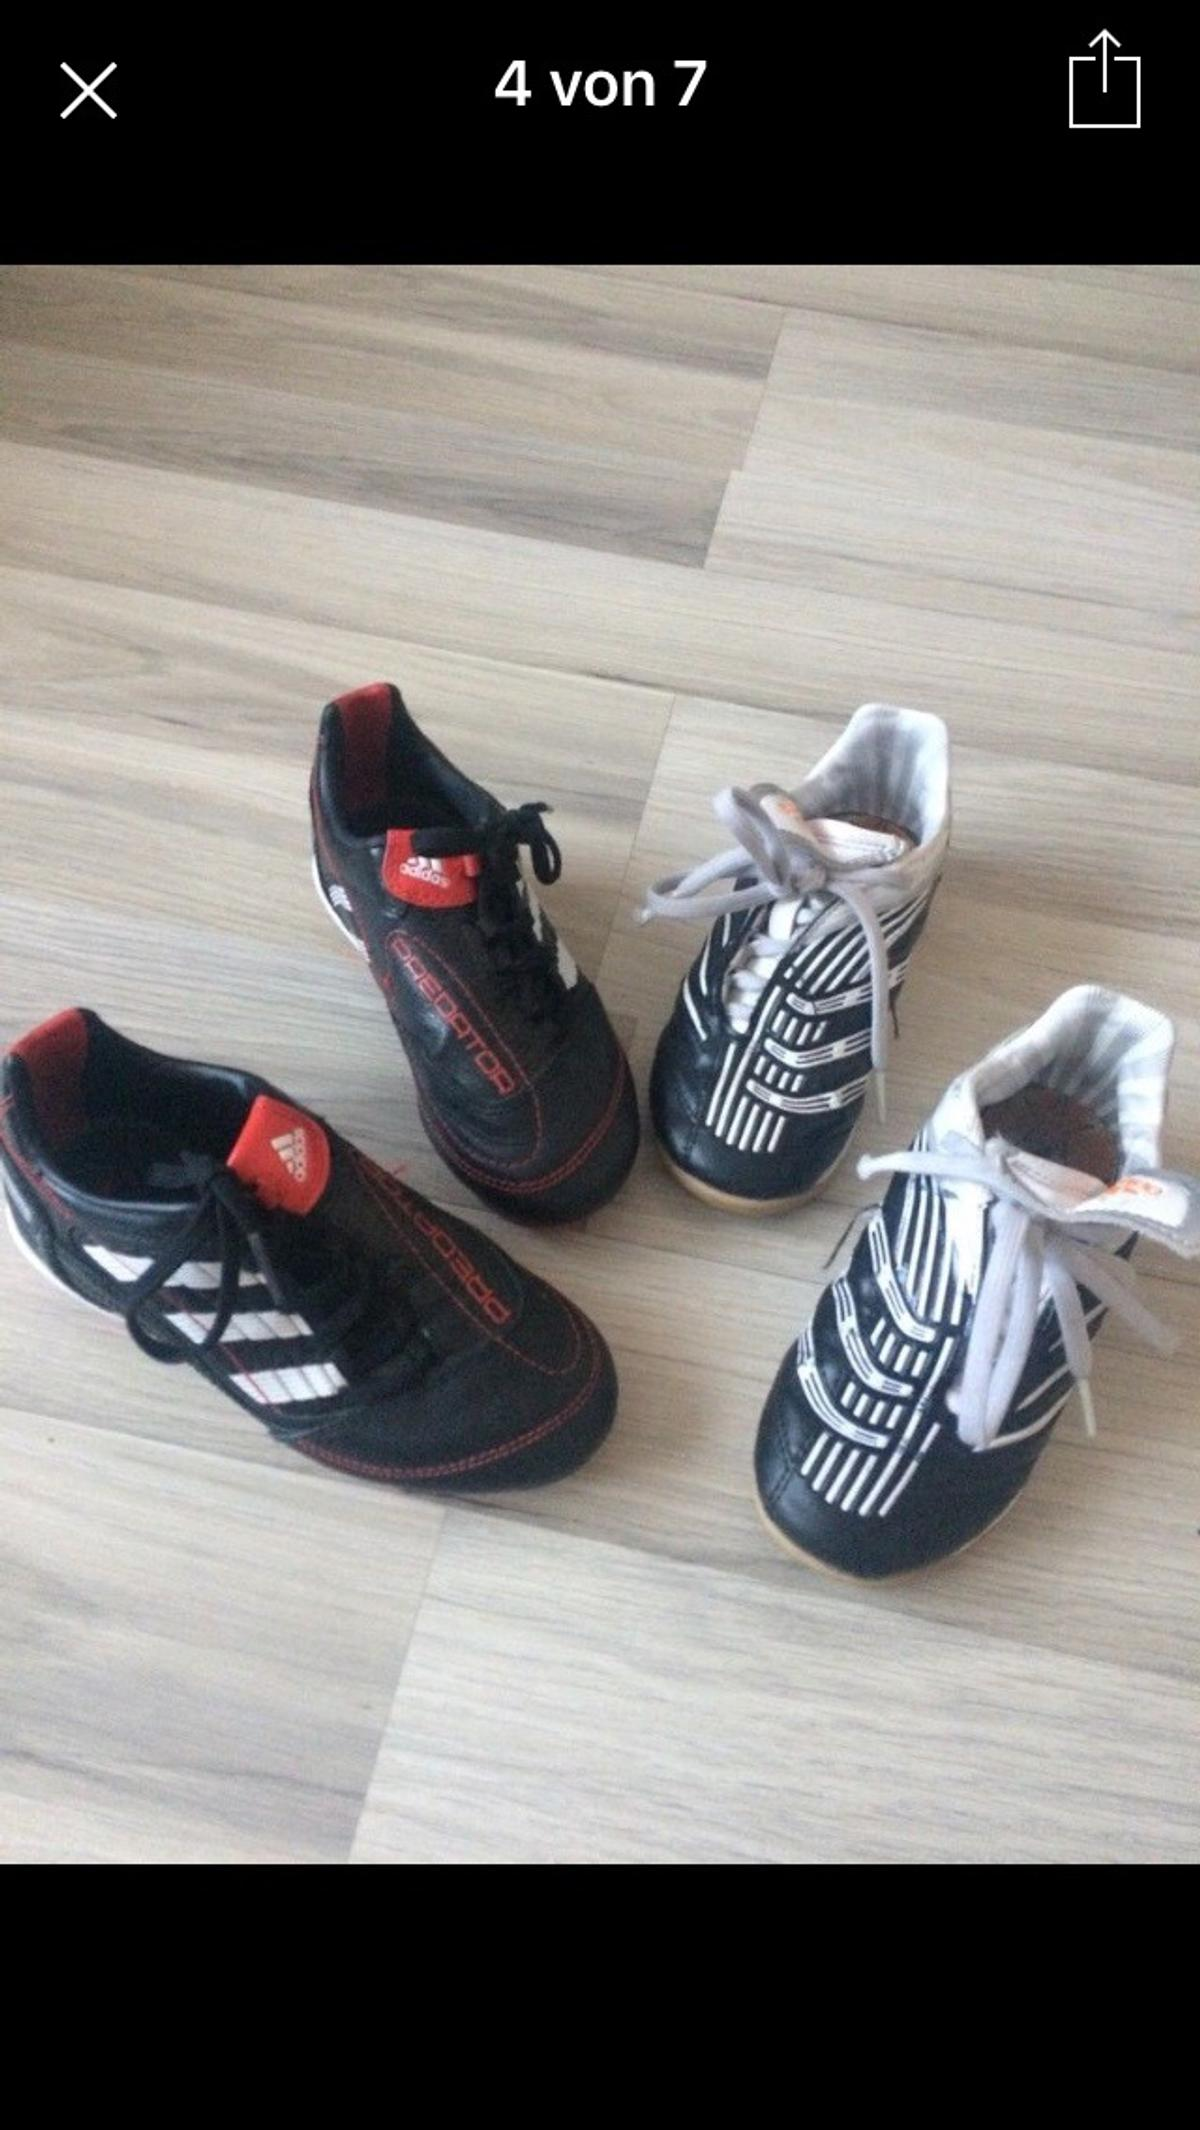 2 paar Adidas in 44866 Bochum for €23.00 for sale | Shpock